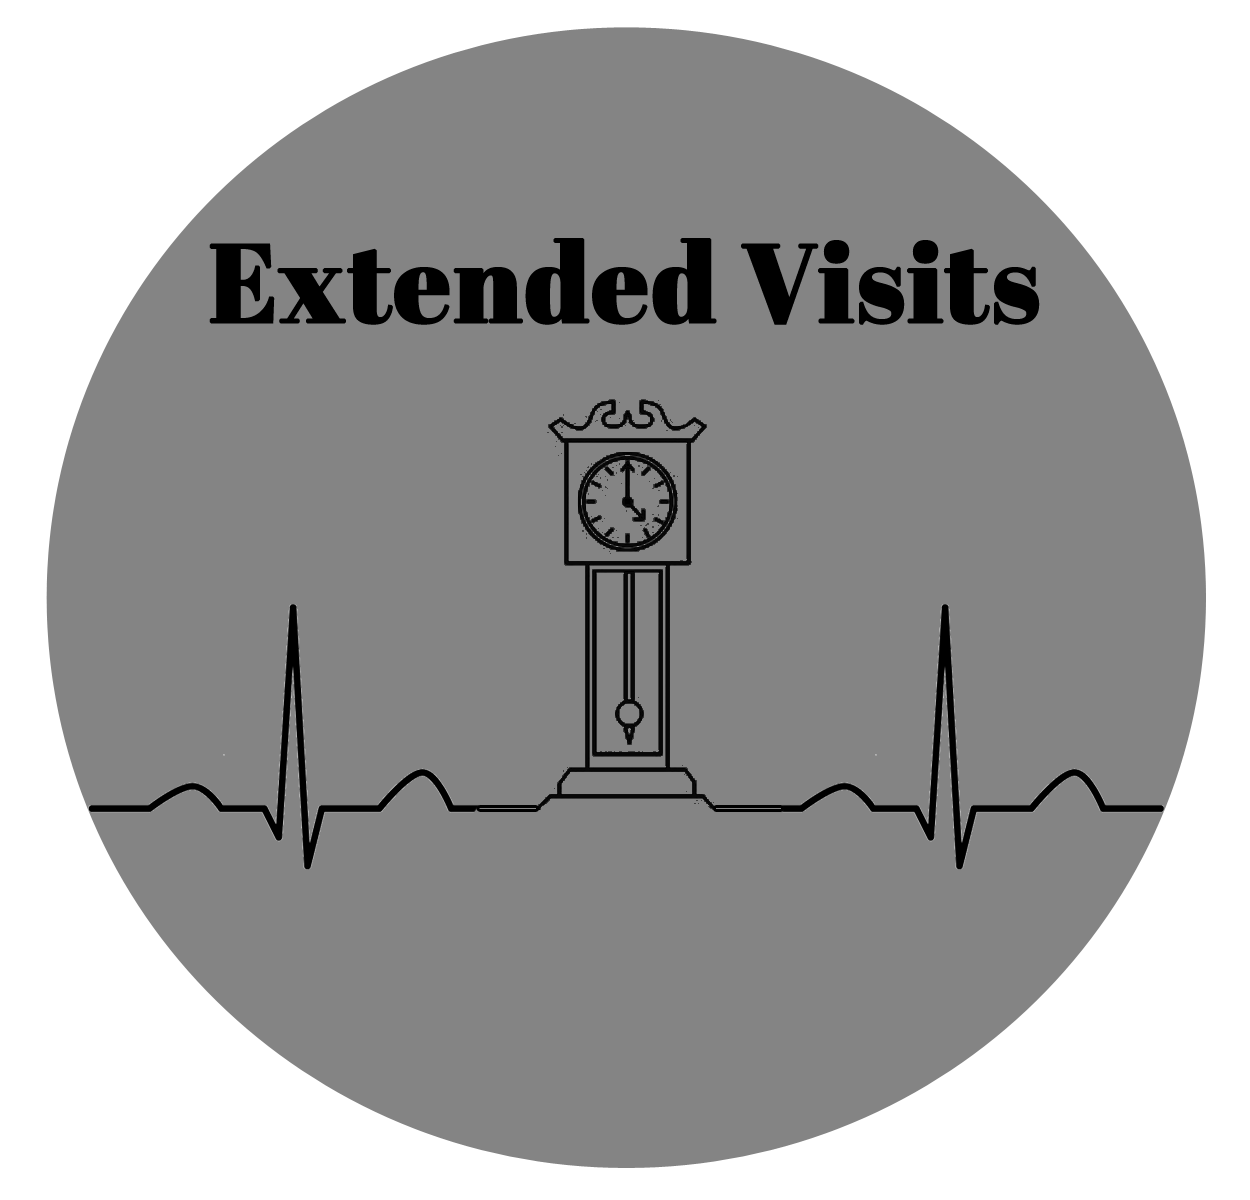 Tired of being rushed?    We offer relaxed, non-hurried visits up to 1 hour . . .  that actually start on time!